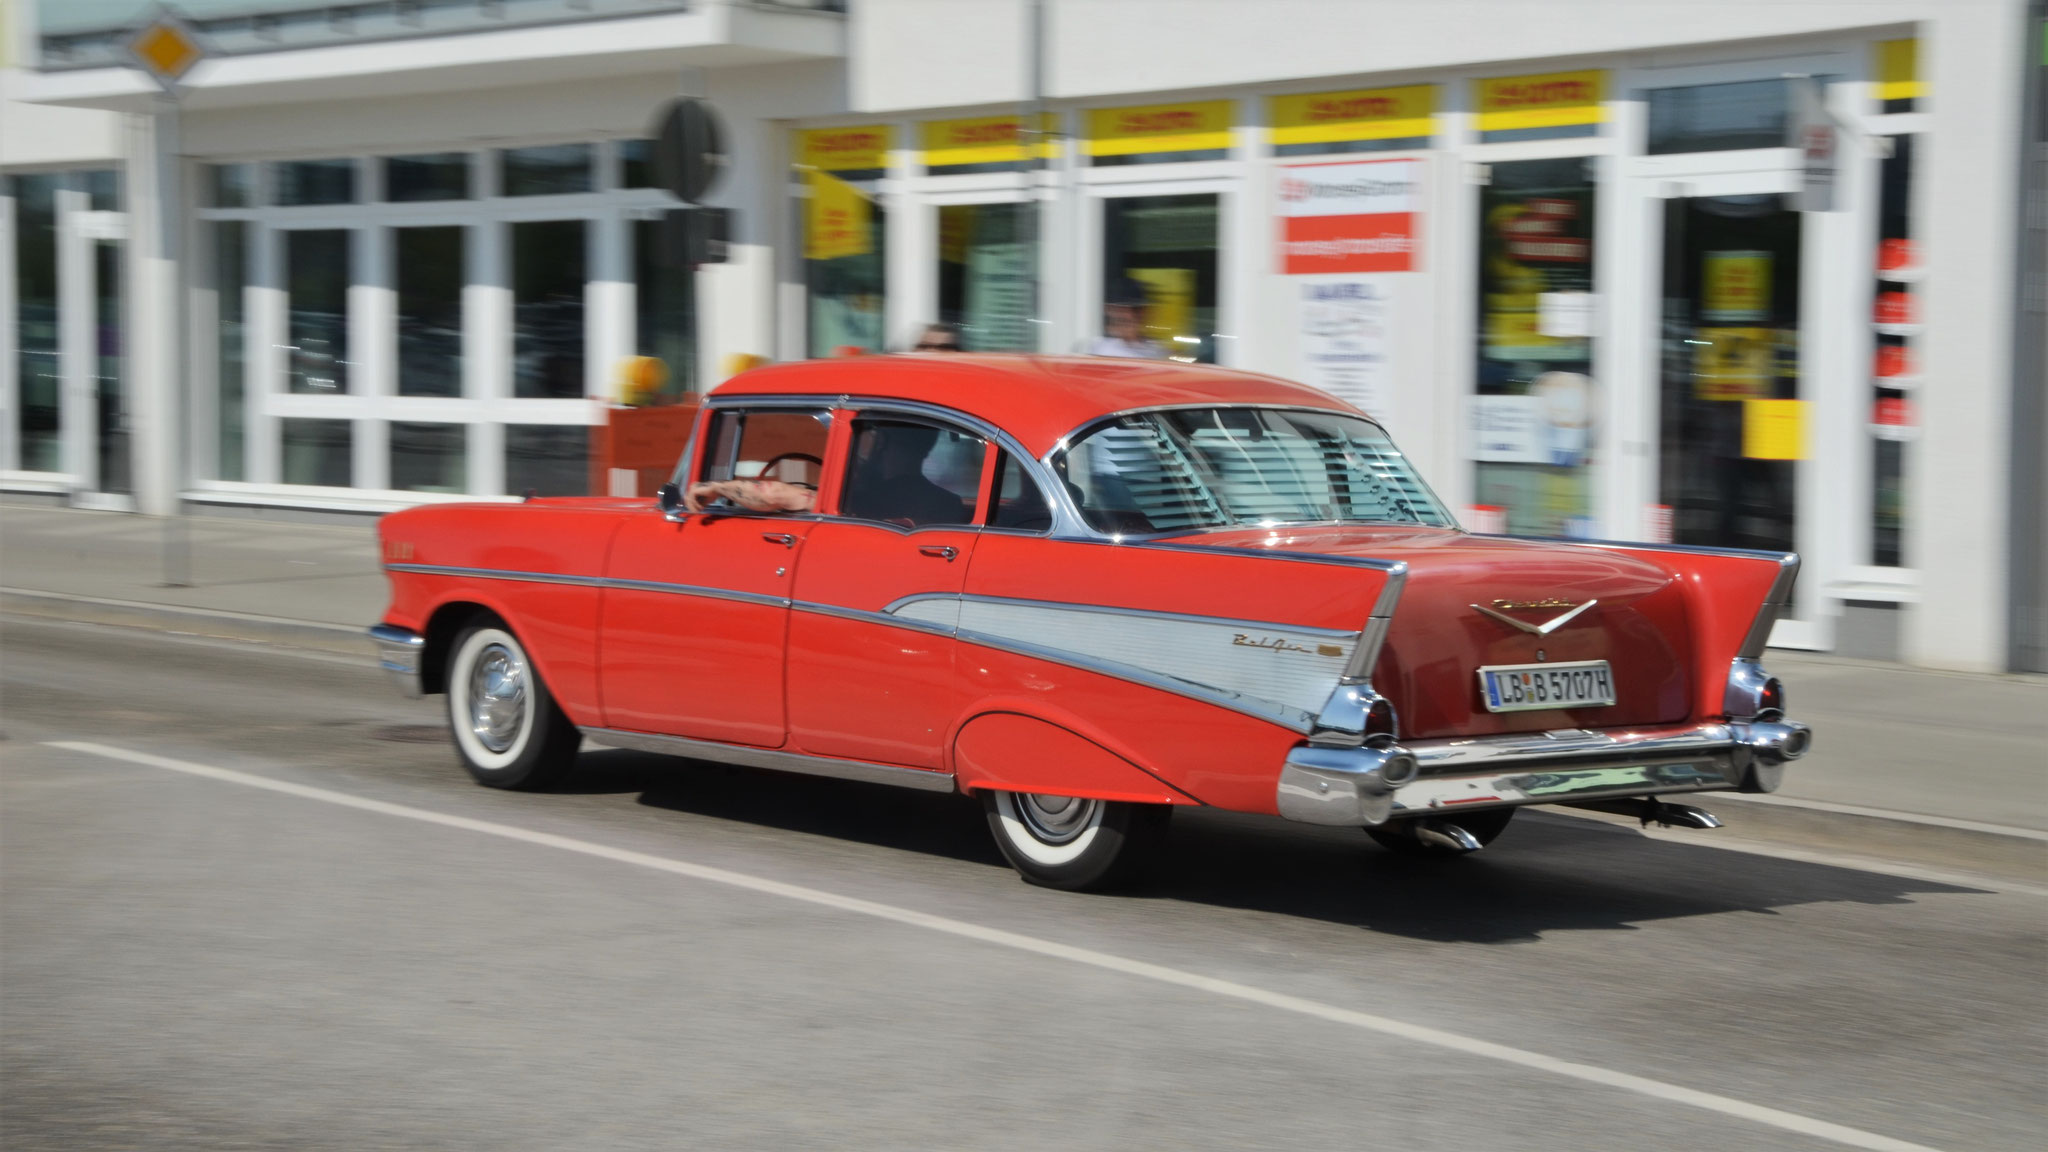 Chevrolet Bel Air  - LB-B-5707H